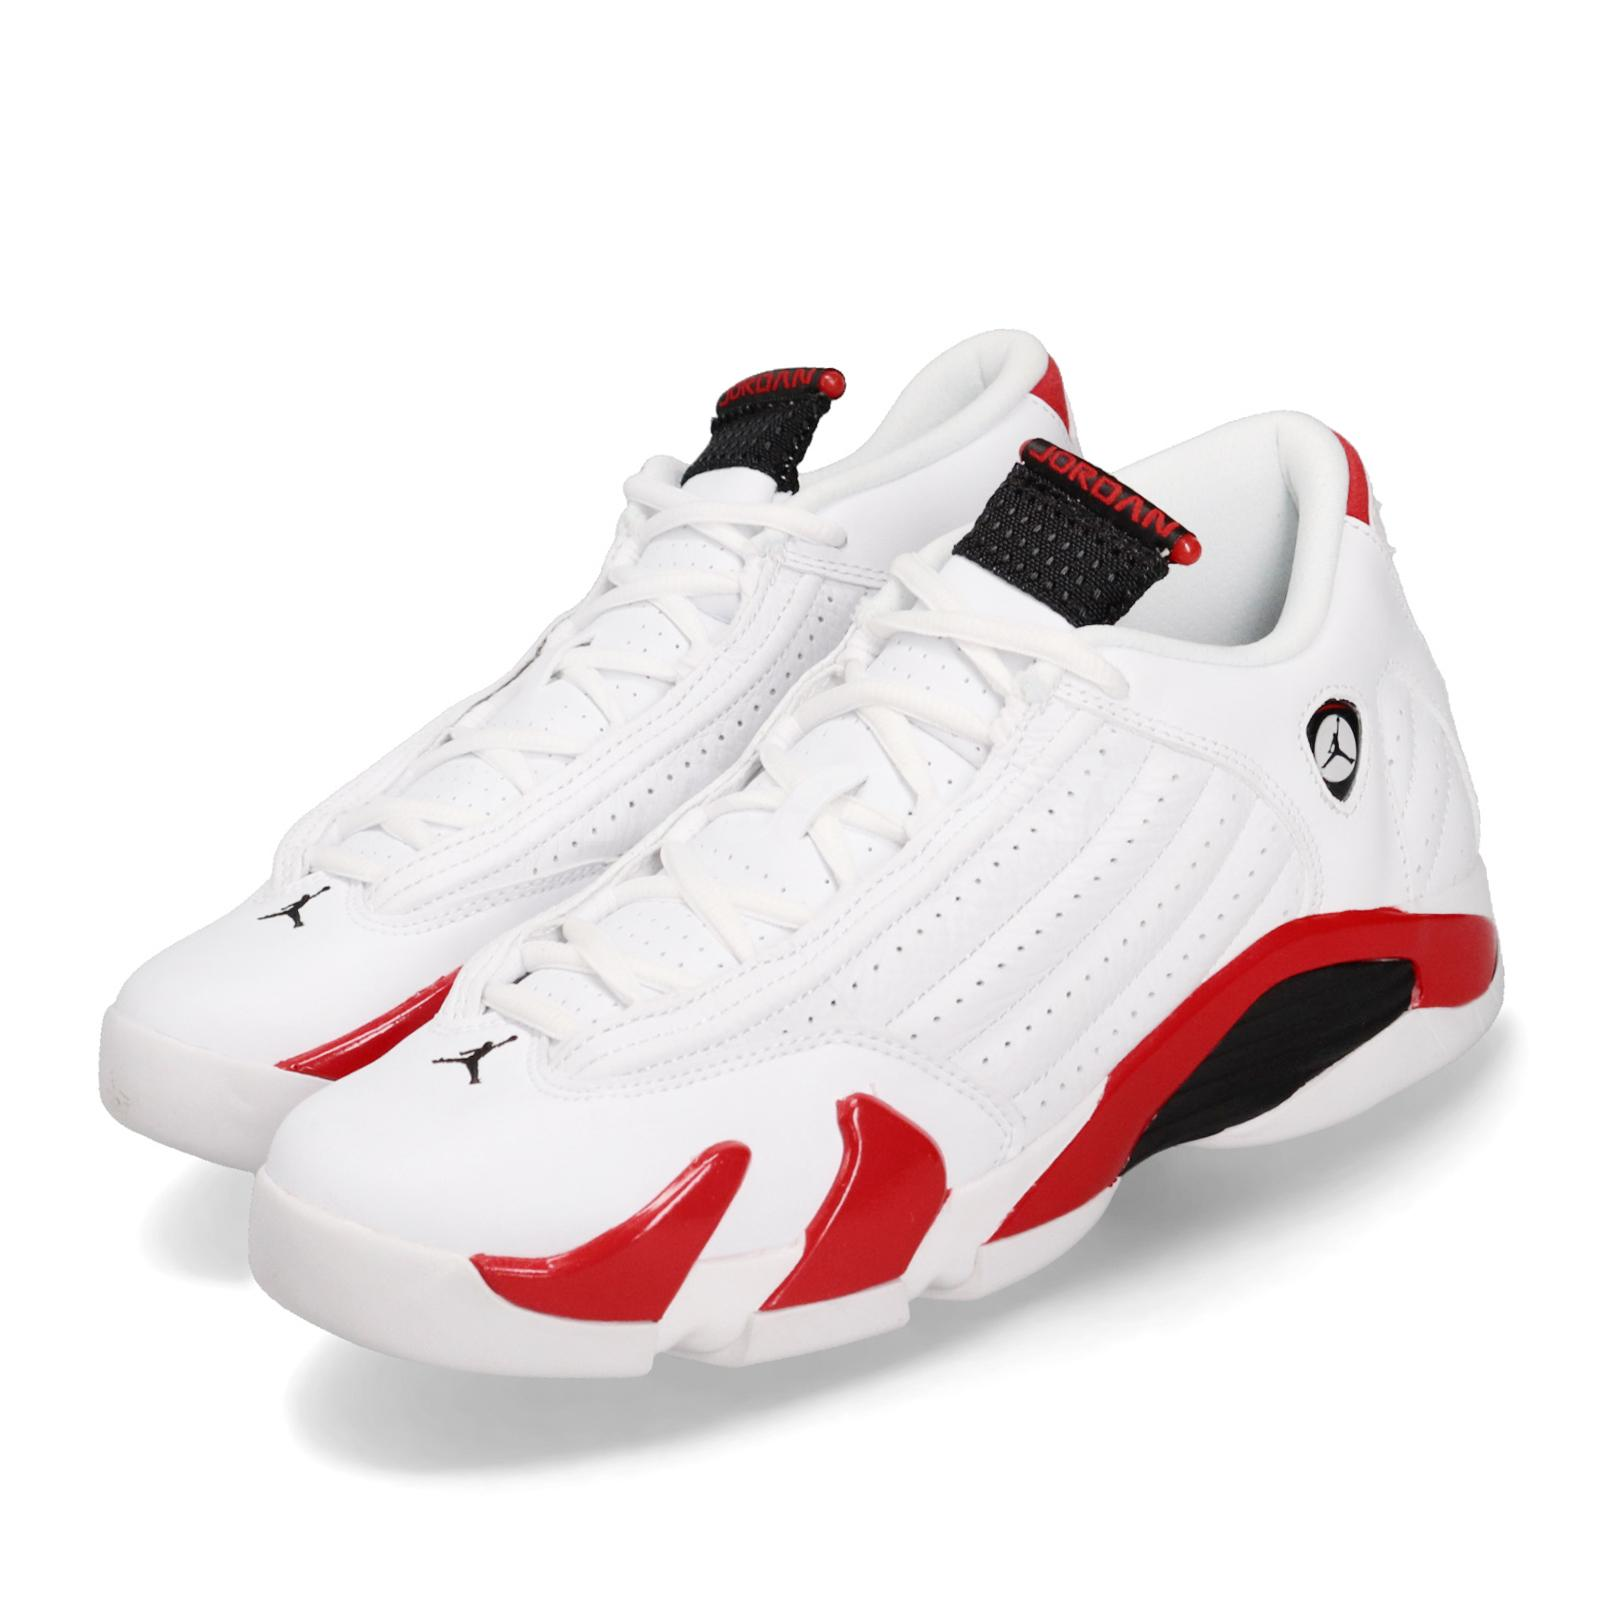 timeless design d2134 b85b5 Details about Nike Air Jordan 14 Retro BG Rip Hamilton White Red AJ14 XIV  OG GS 487524-100